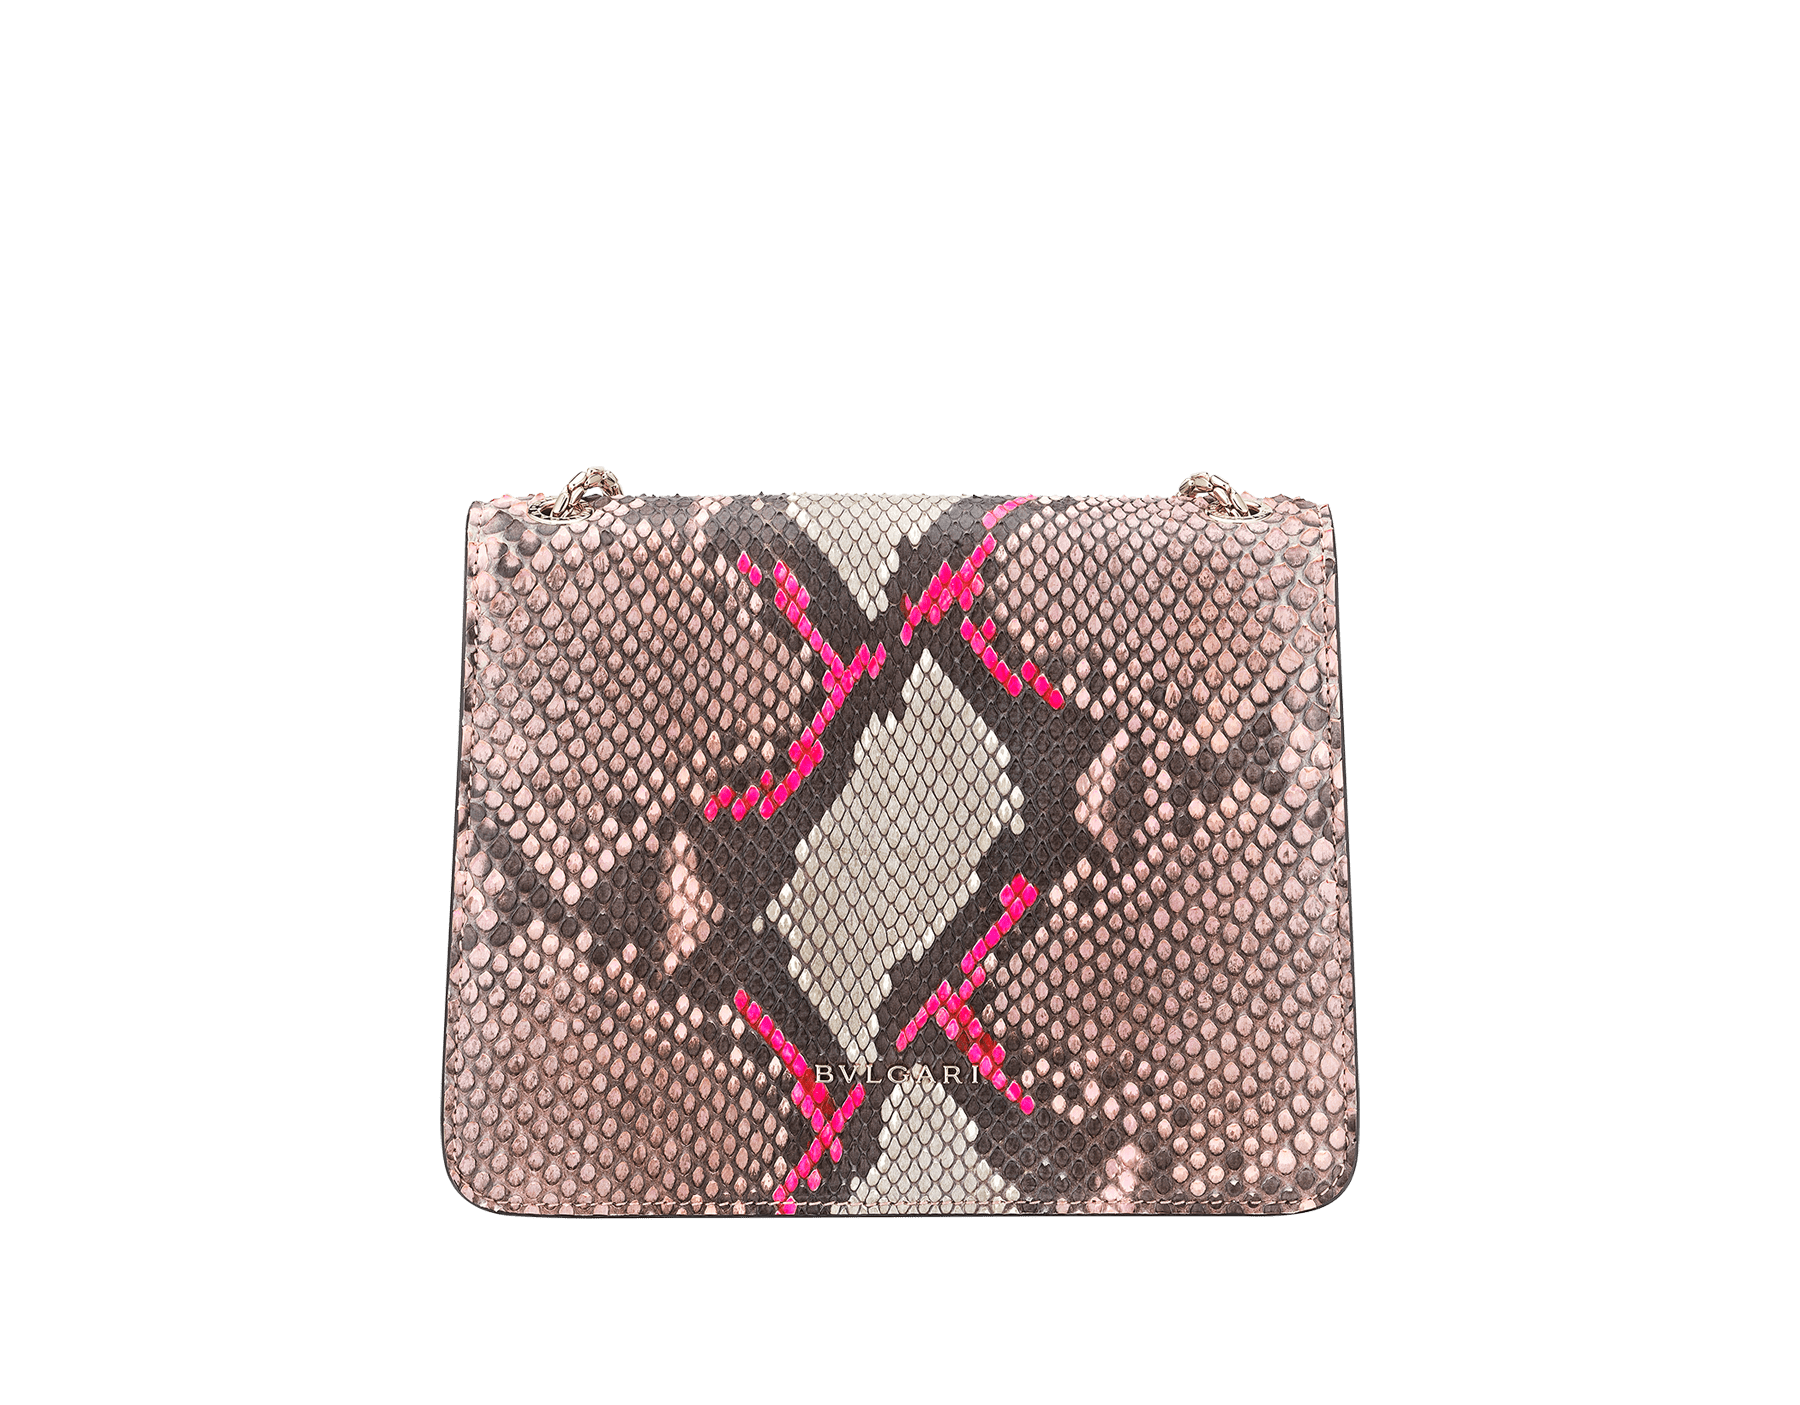 """Serpenti Forever"" crossbody bag in silky coral and flash amethyst Neon python skin. Iconic snake head closure in light gold plated brass enriched with black and flash amethyst enamel and black onyx eyes. 288953 image 4"